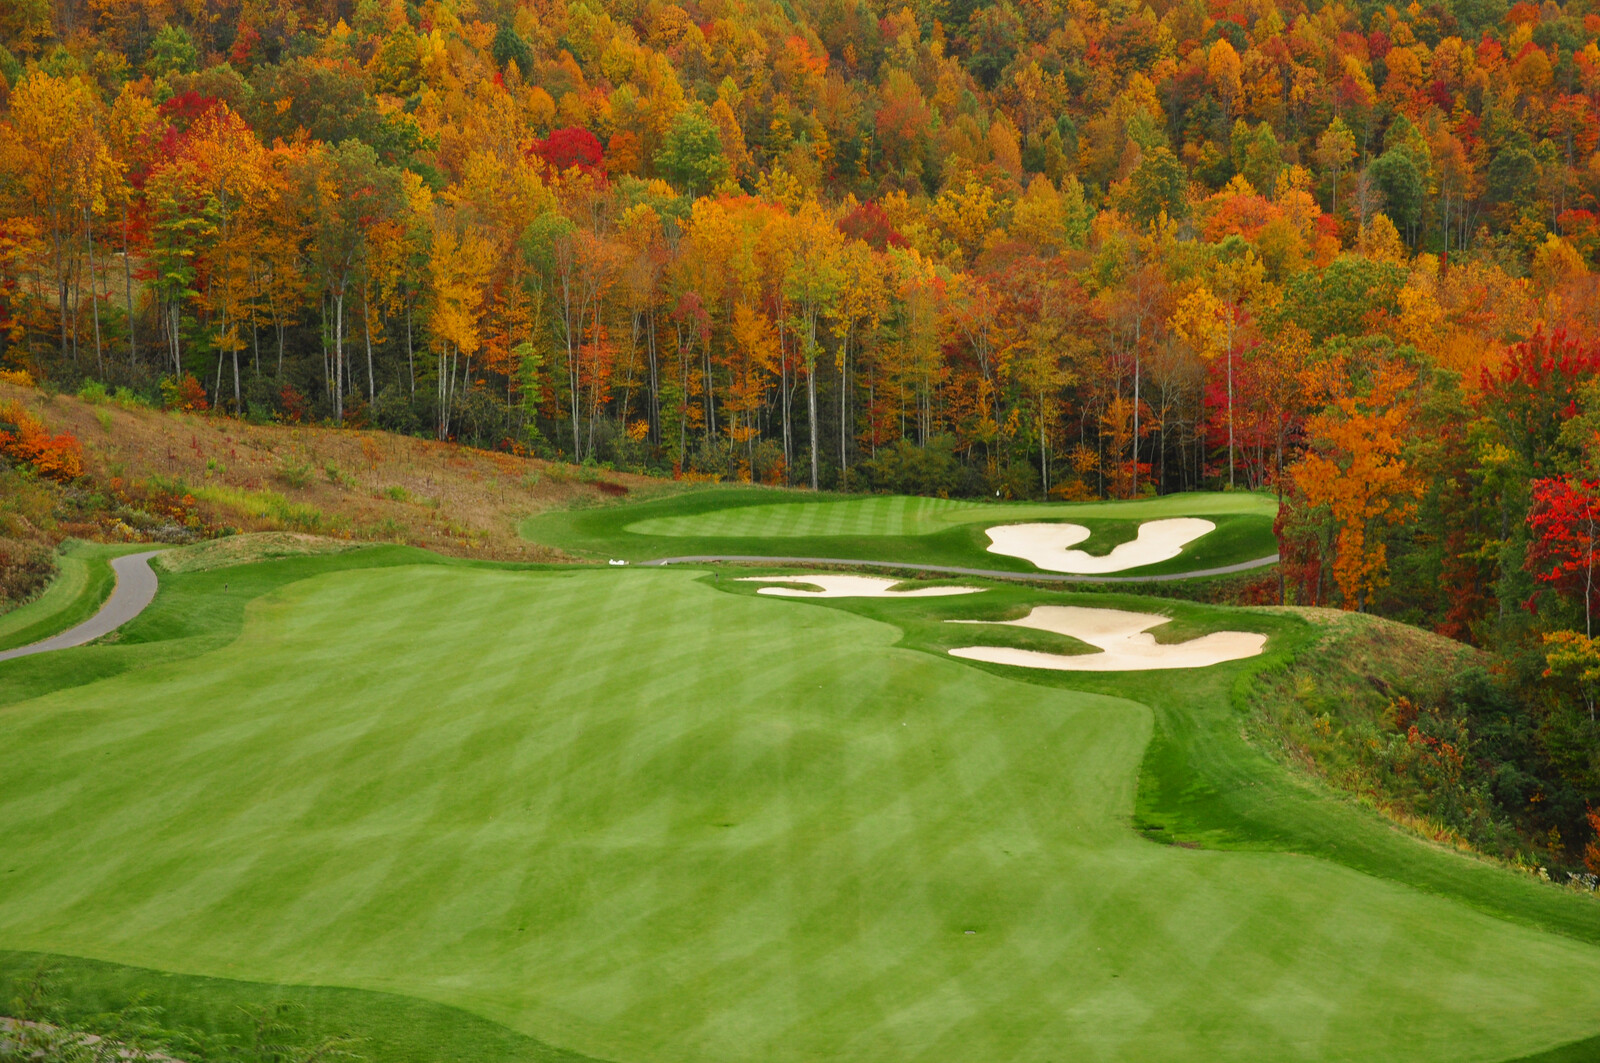 Beautiful autumn colors outlining well manicured golf greens